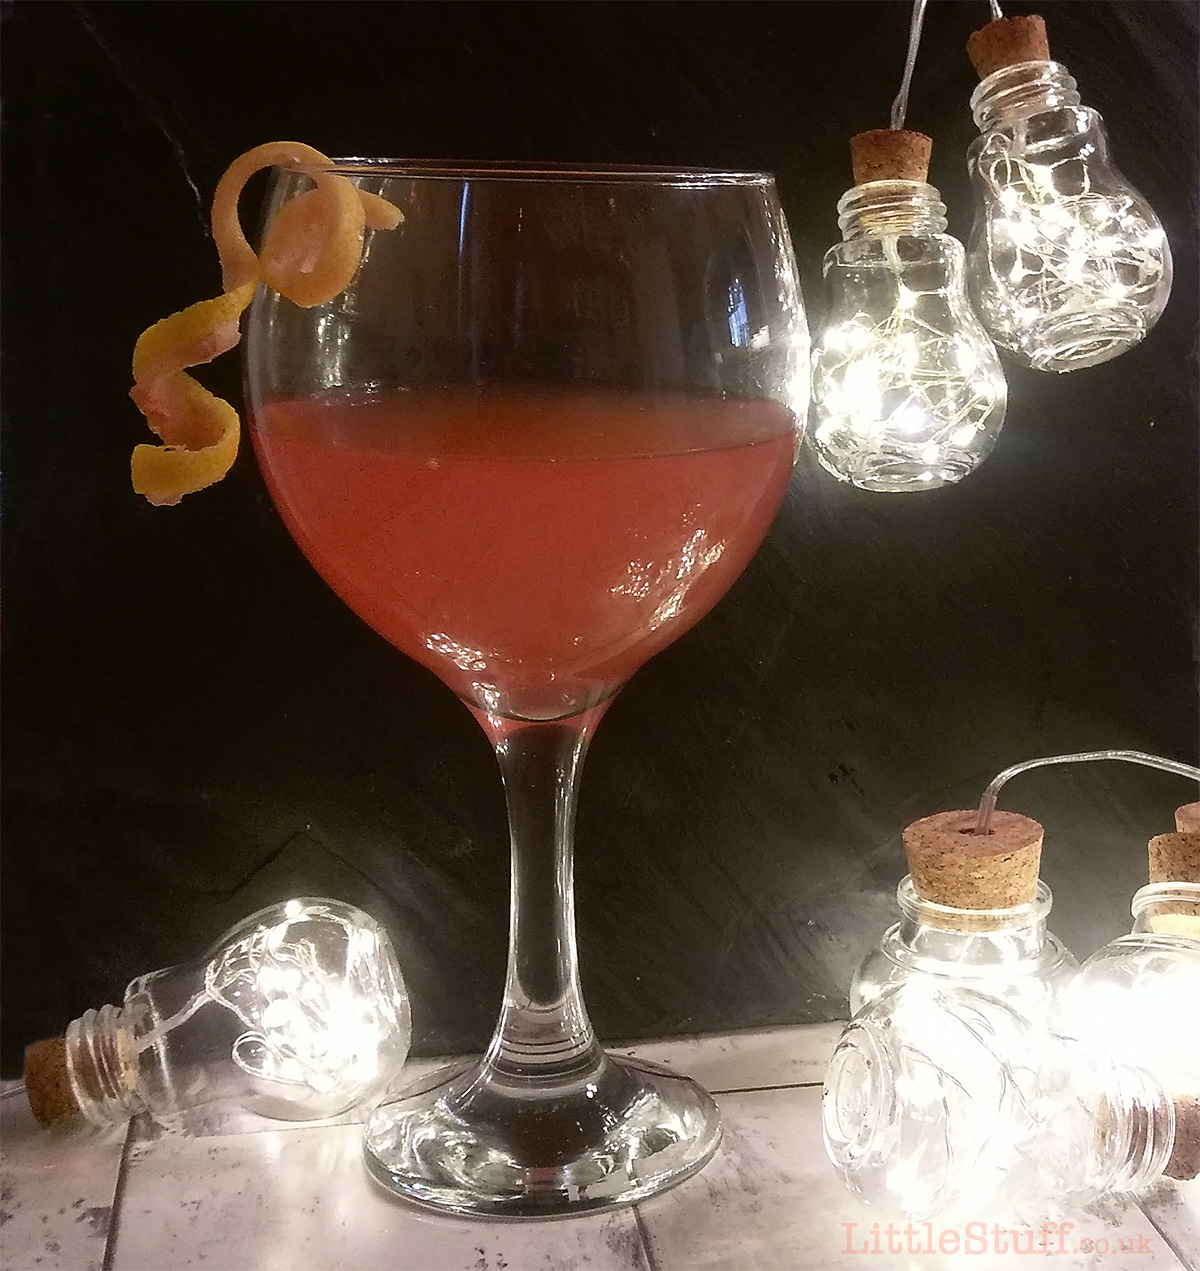 Silver wedding party cocktails sloe gin fizz pitcher for Pitcher drink recipes for parties